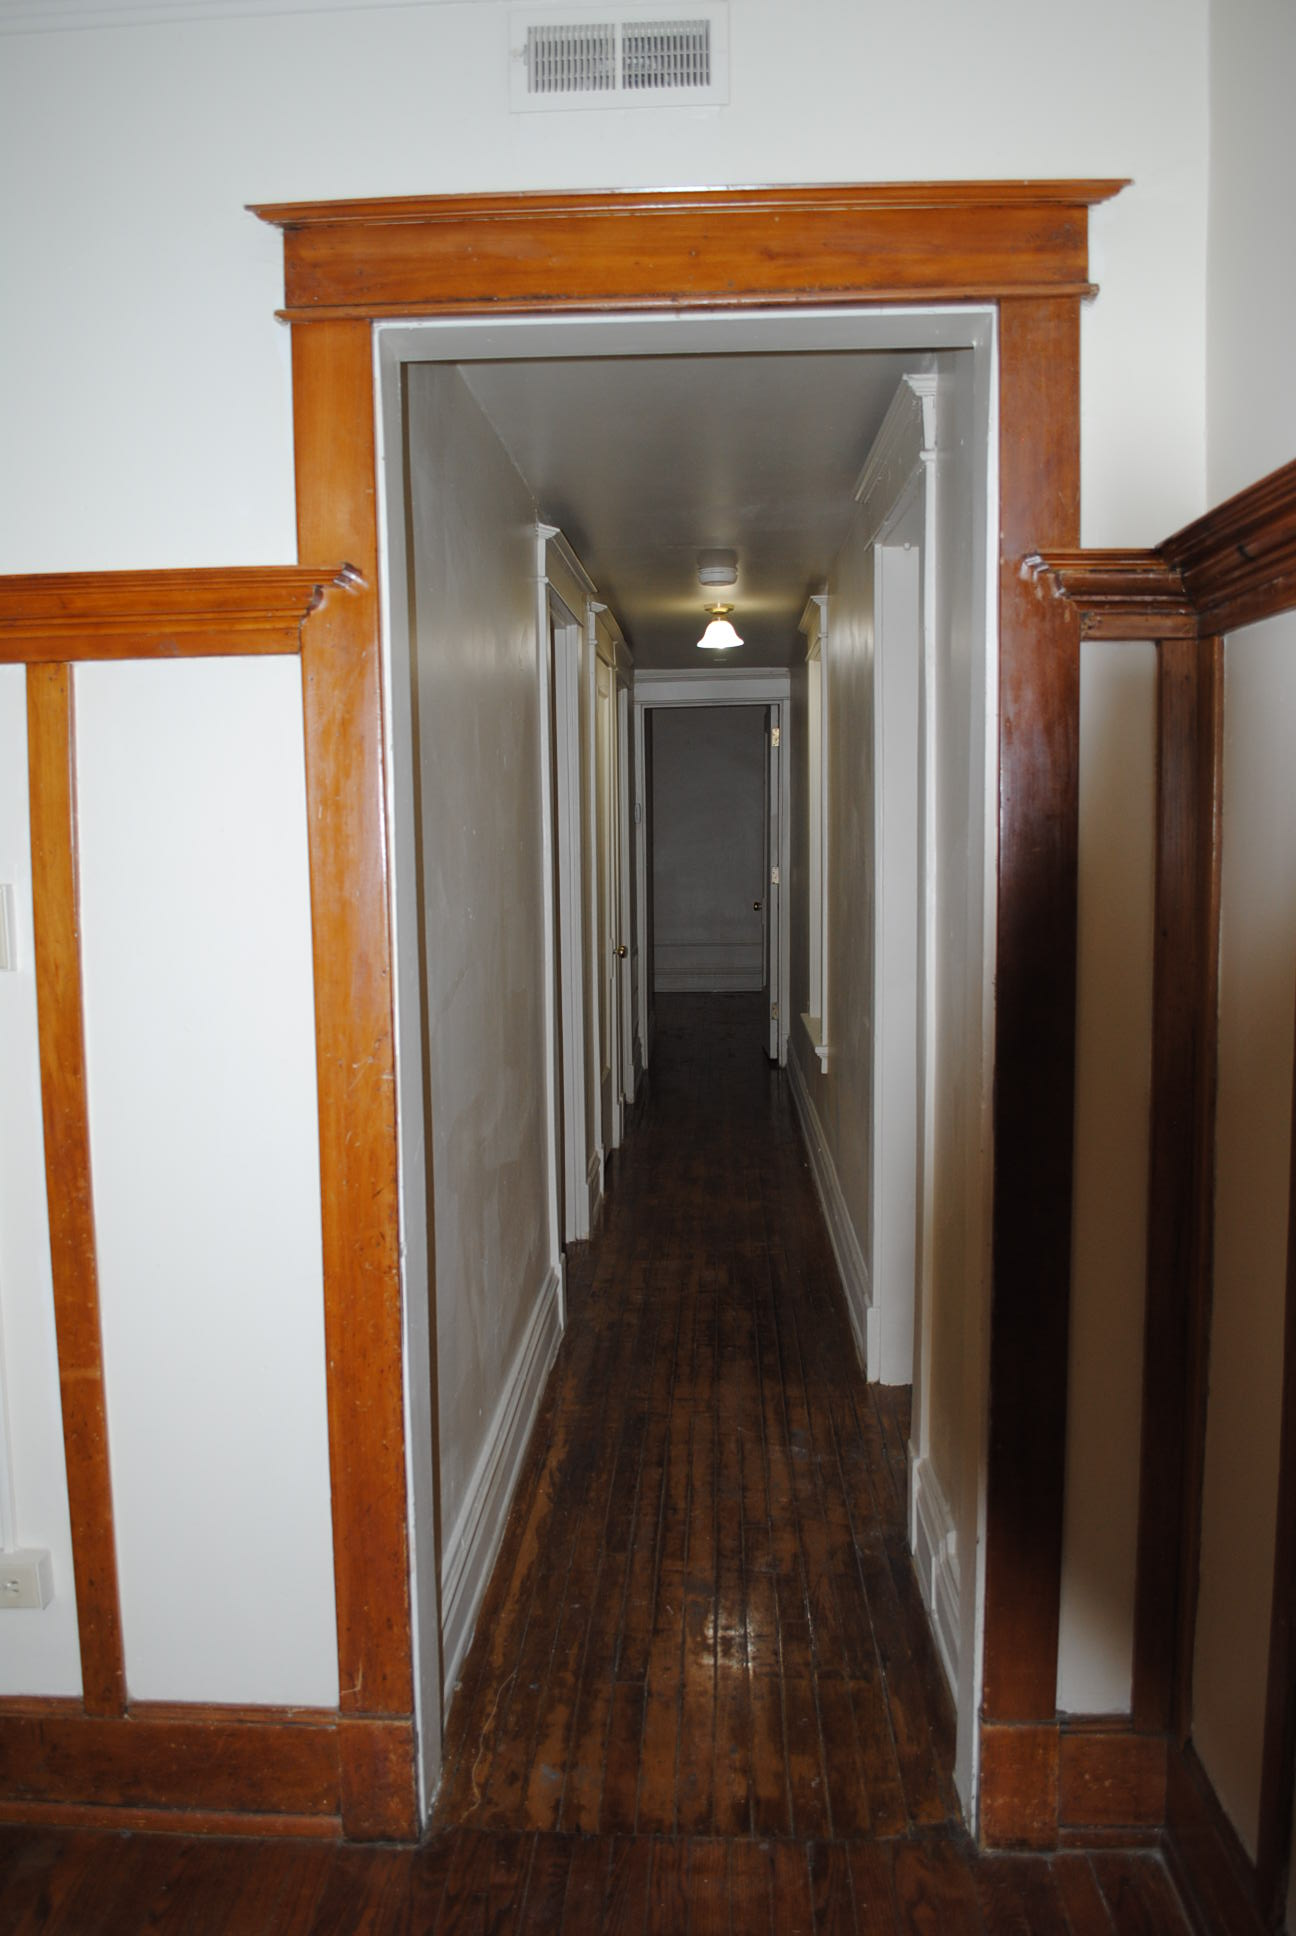 The%20maine_inside_2bdrm_hallway